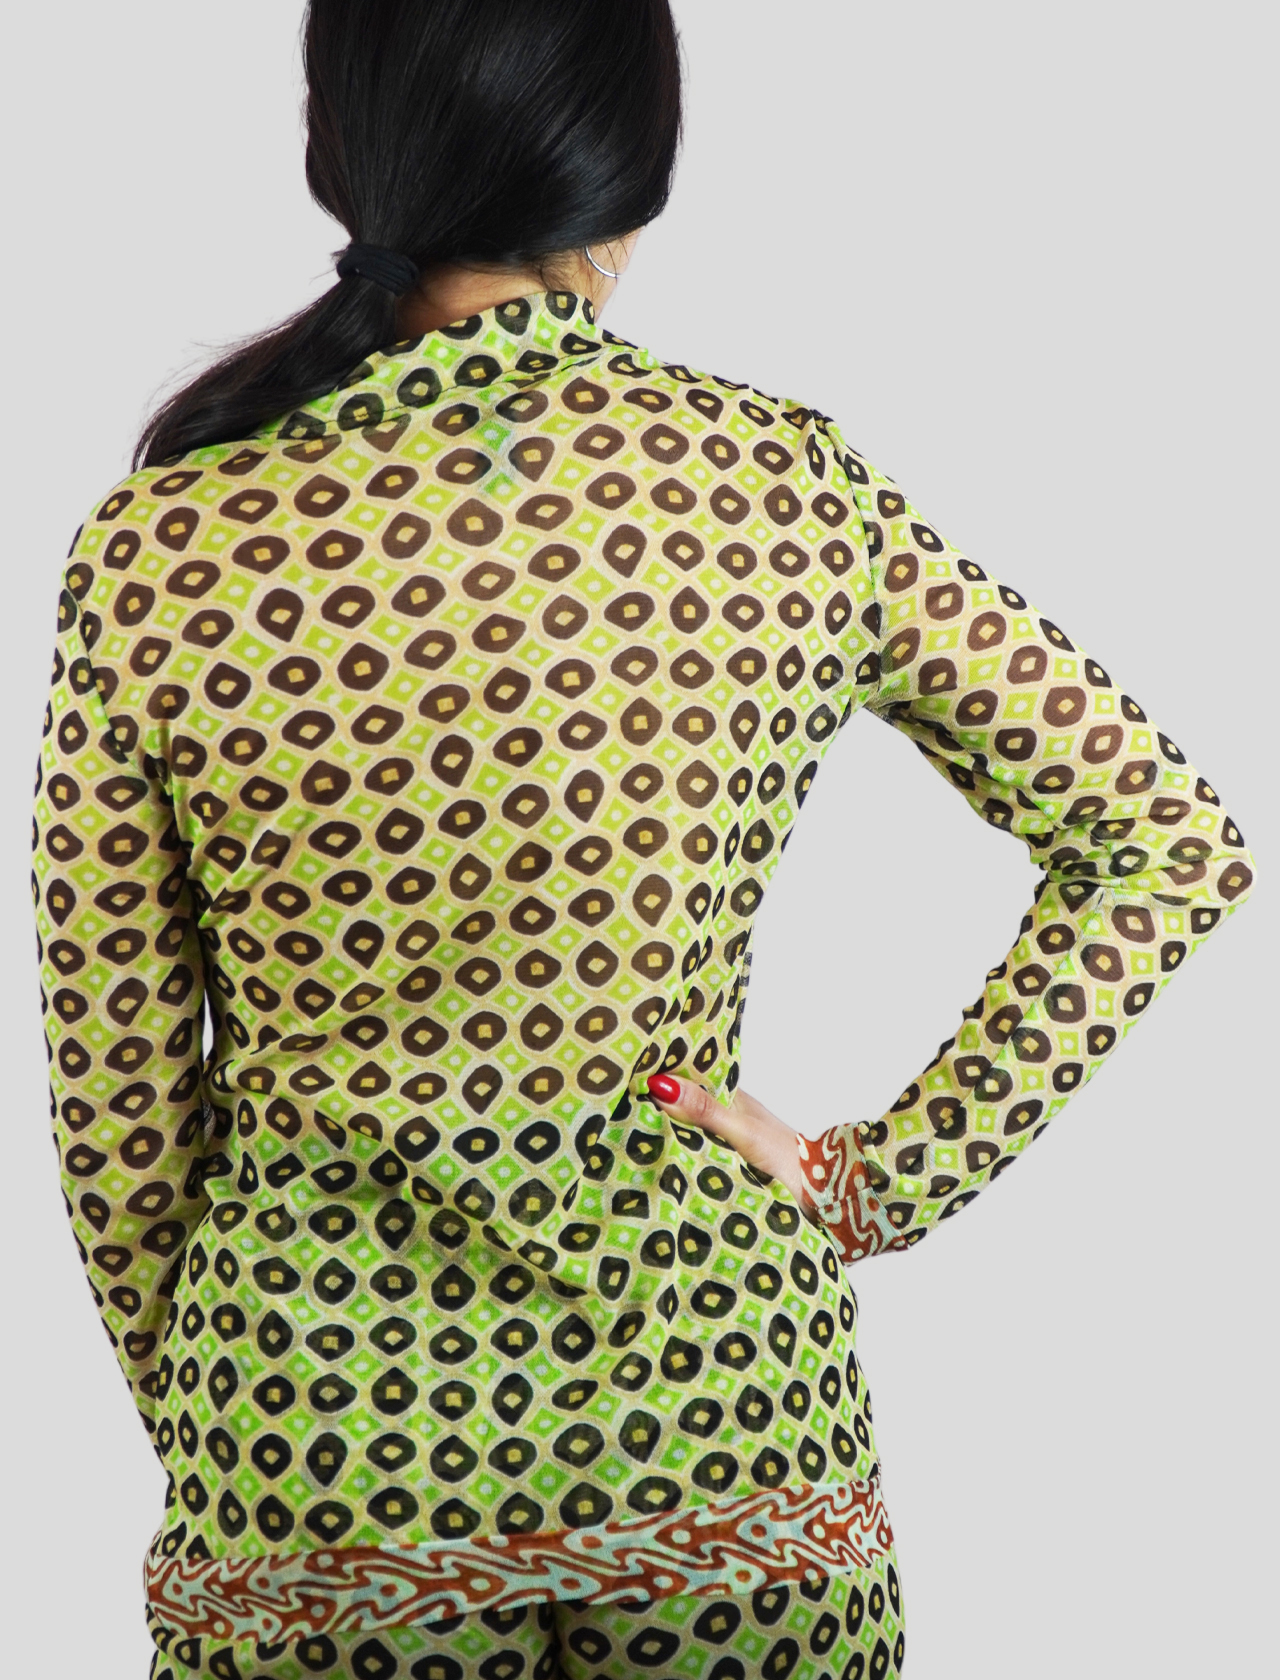 Women's Clothing Tribal Dance Shirt in Green and Gold Patterned Tulle with Long Sleeves Maliparmi | Shirts and tops | JM542670494C6020